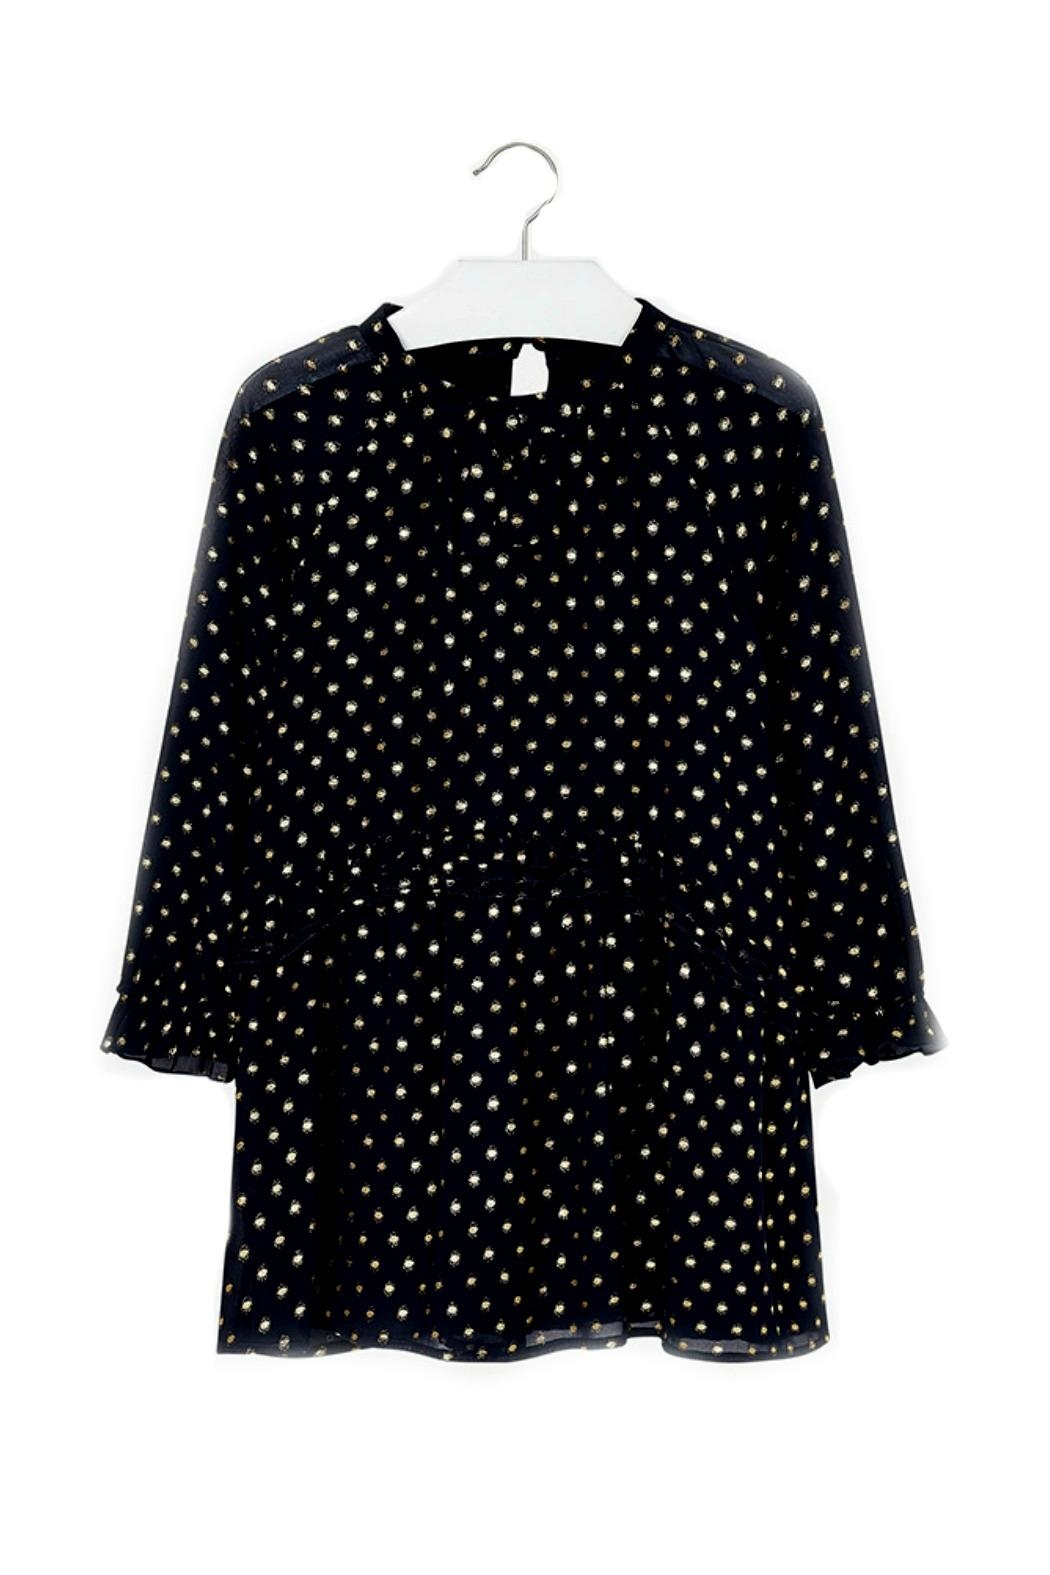 Mayoral Chiffon-Navy-Dress-With-Gold-Metallic-Dots - Main Image